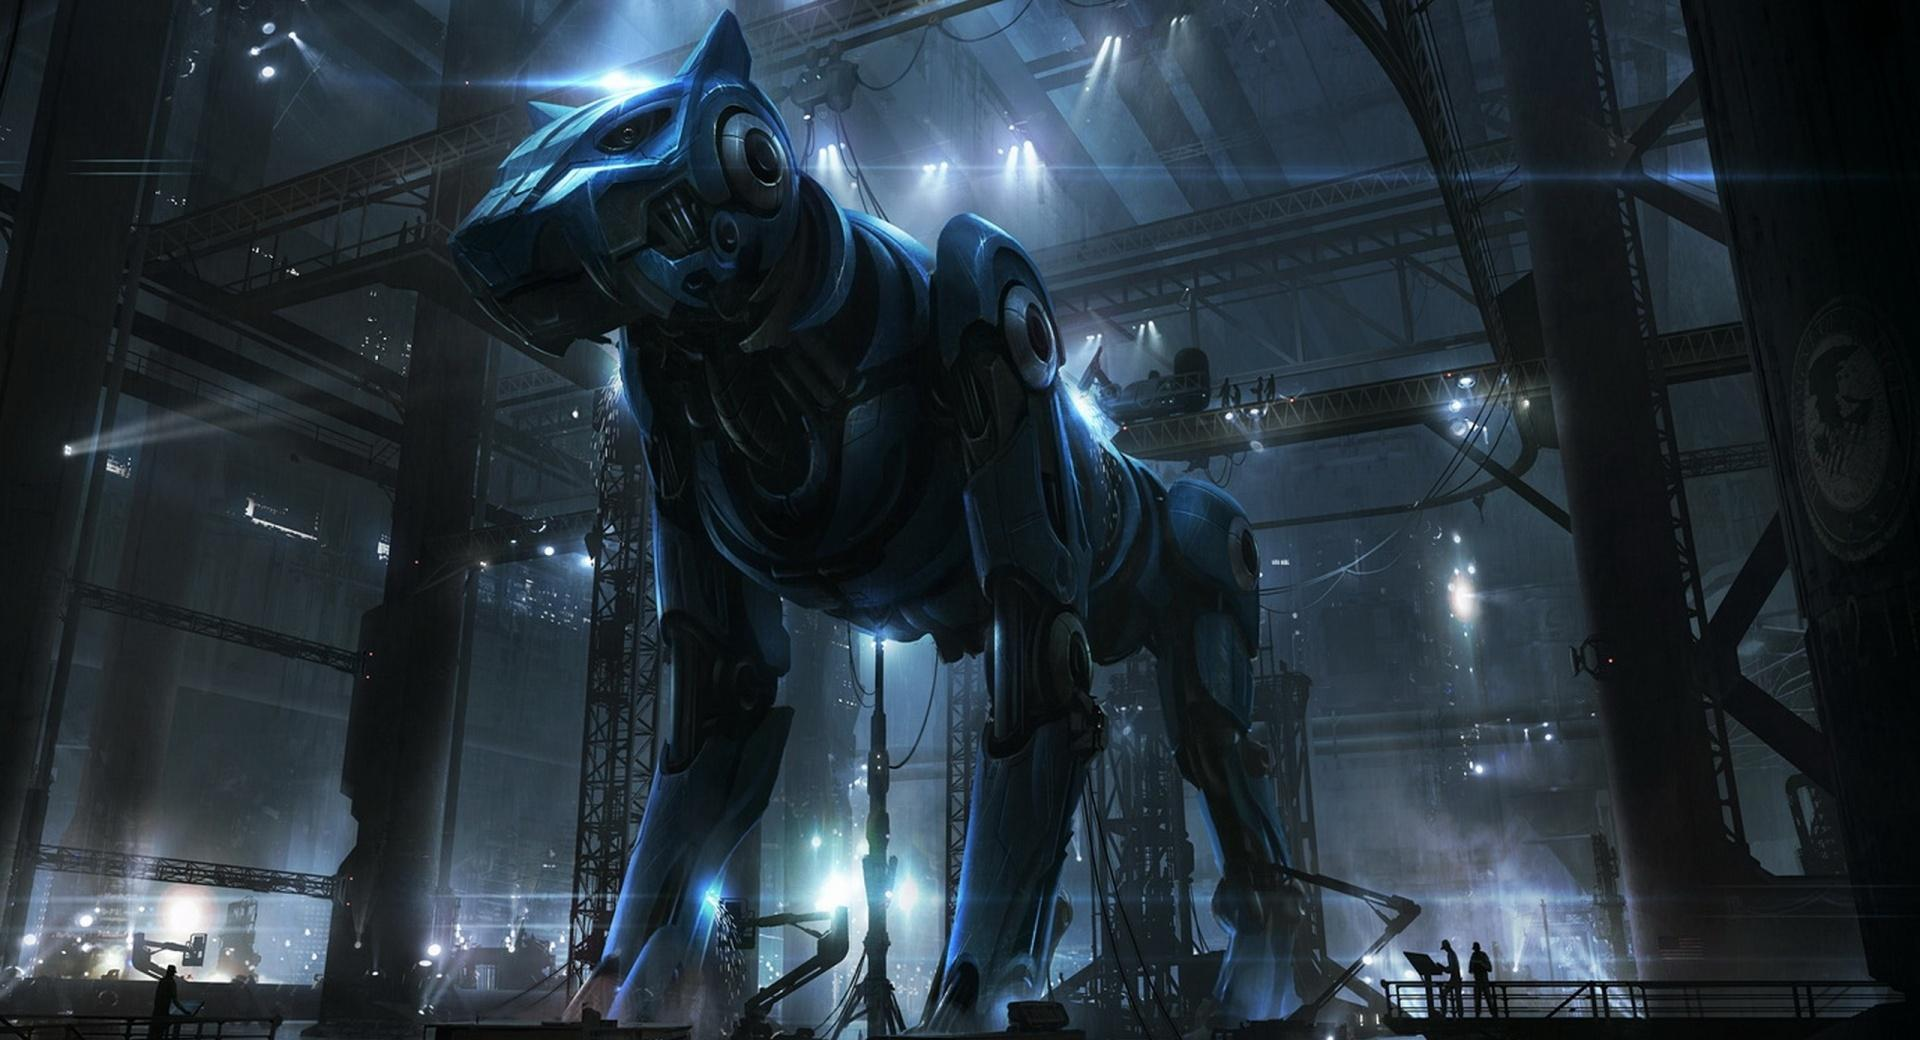 Giant Robot Dog wallpapers HD quality